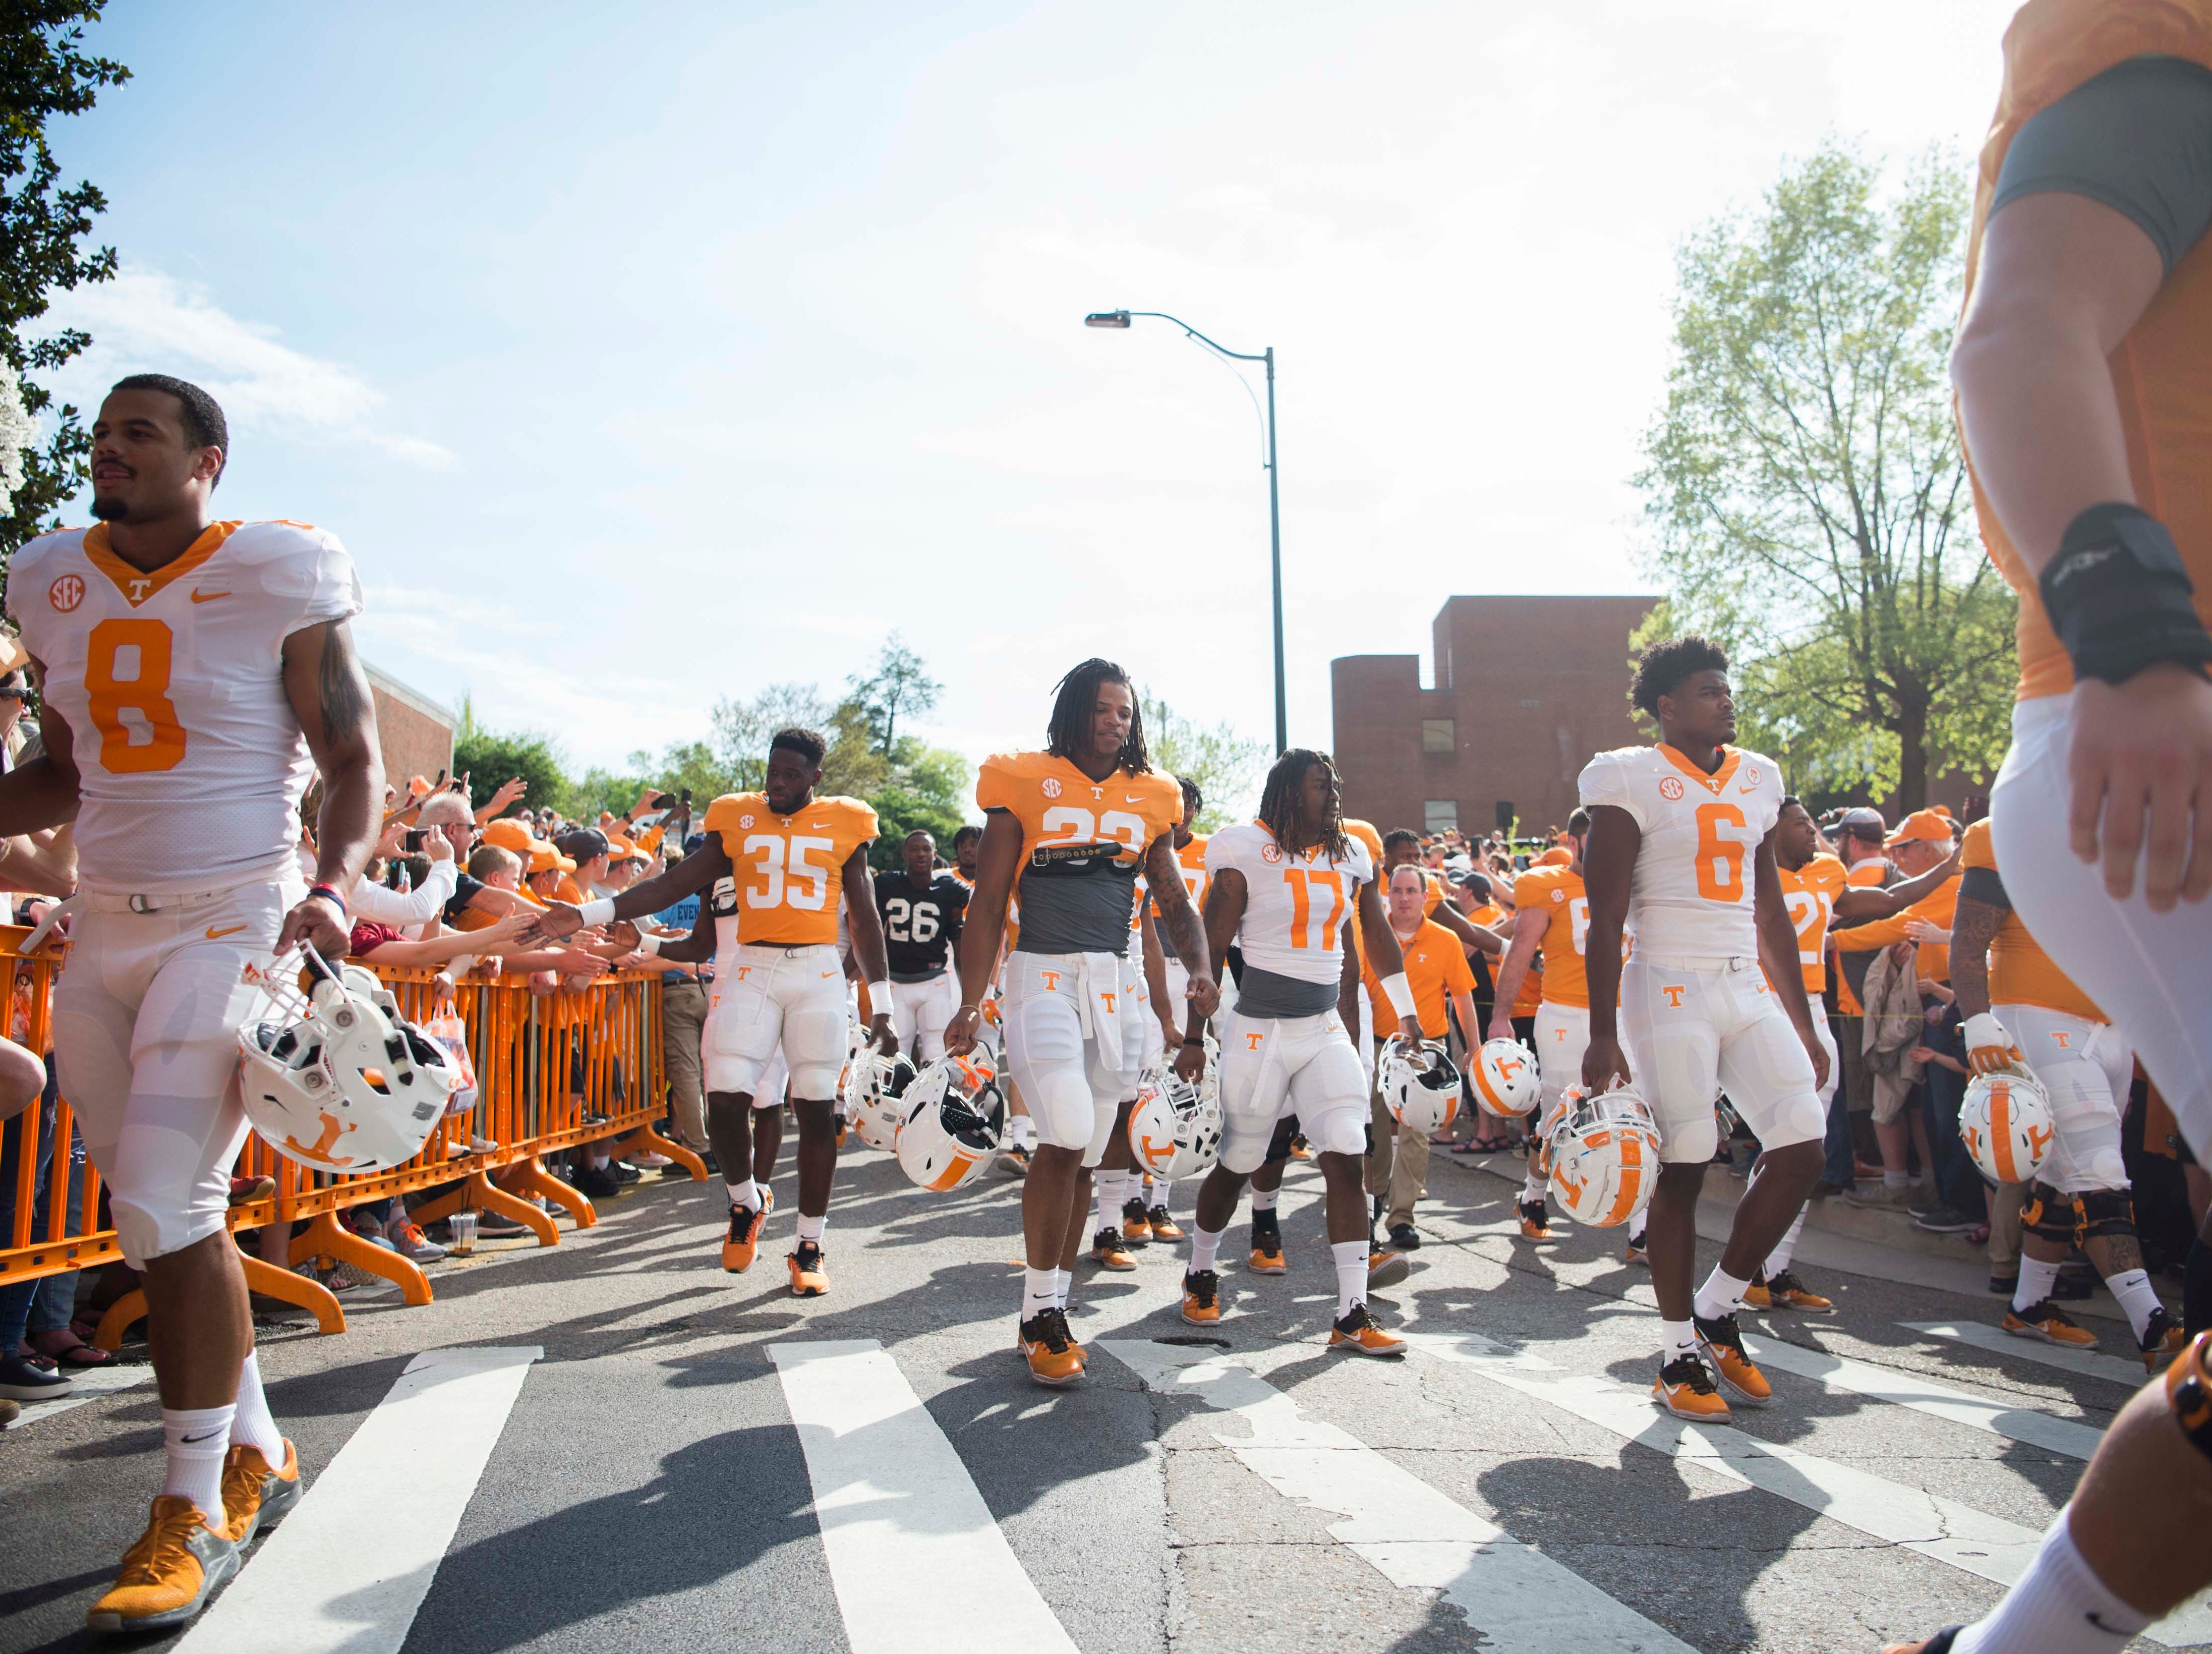 Tennessee players walk in the Vol walk outside Neyland Stadium in Knoxville Saturday, April 13, 2019.